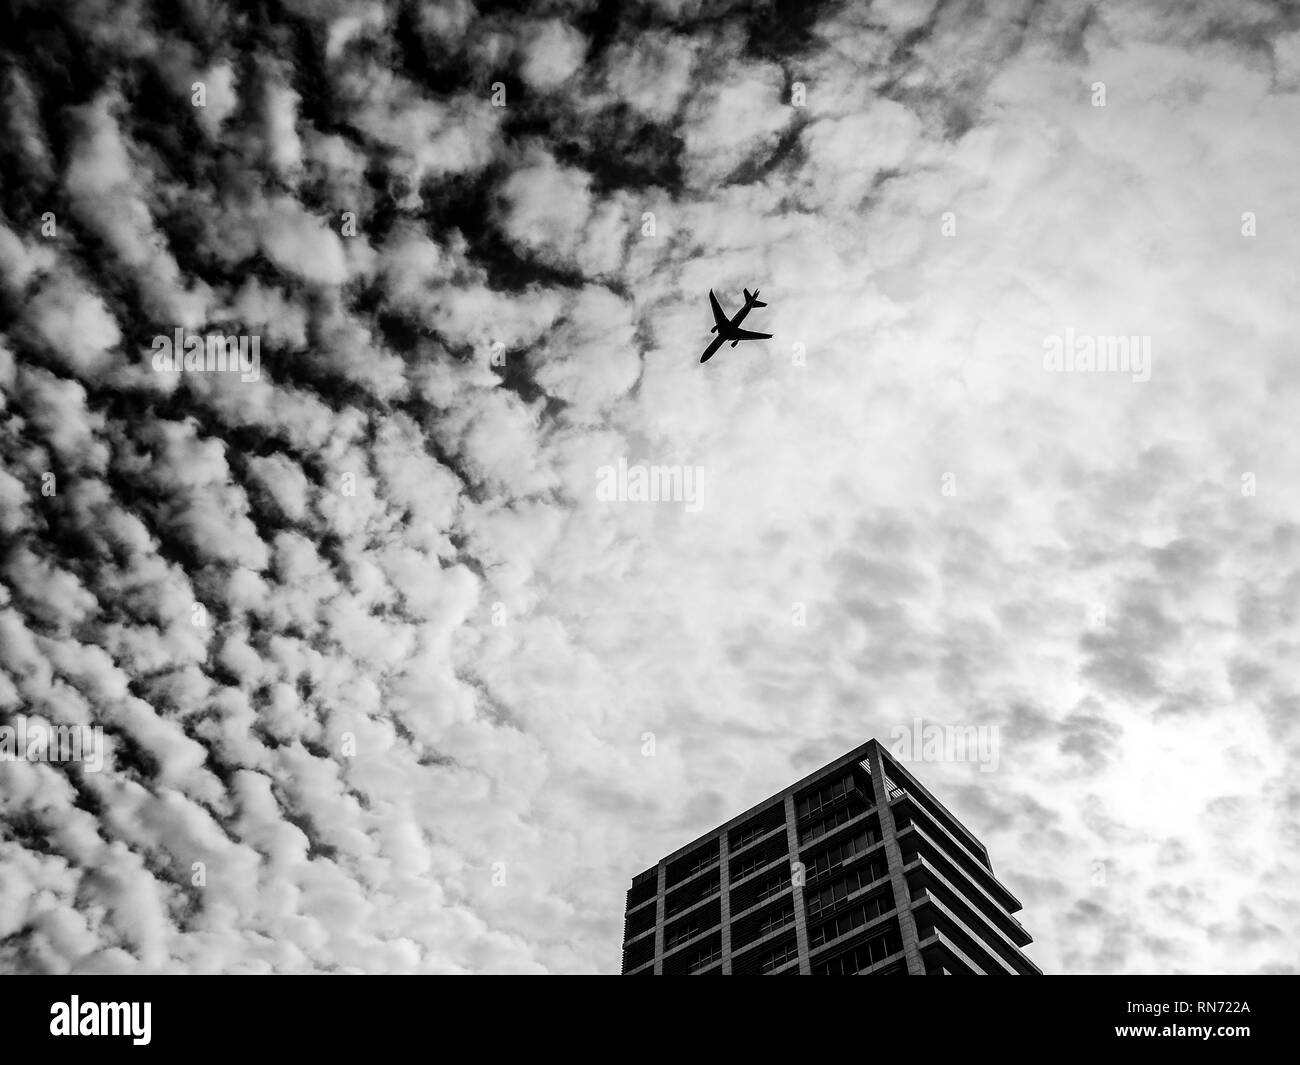 Airplane flying in the sky above the skyscraper. Tel-Aviv, Israel - Stock Image